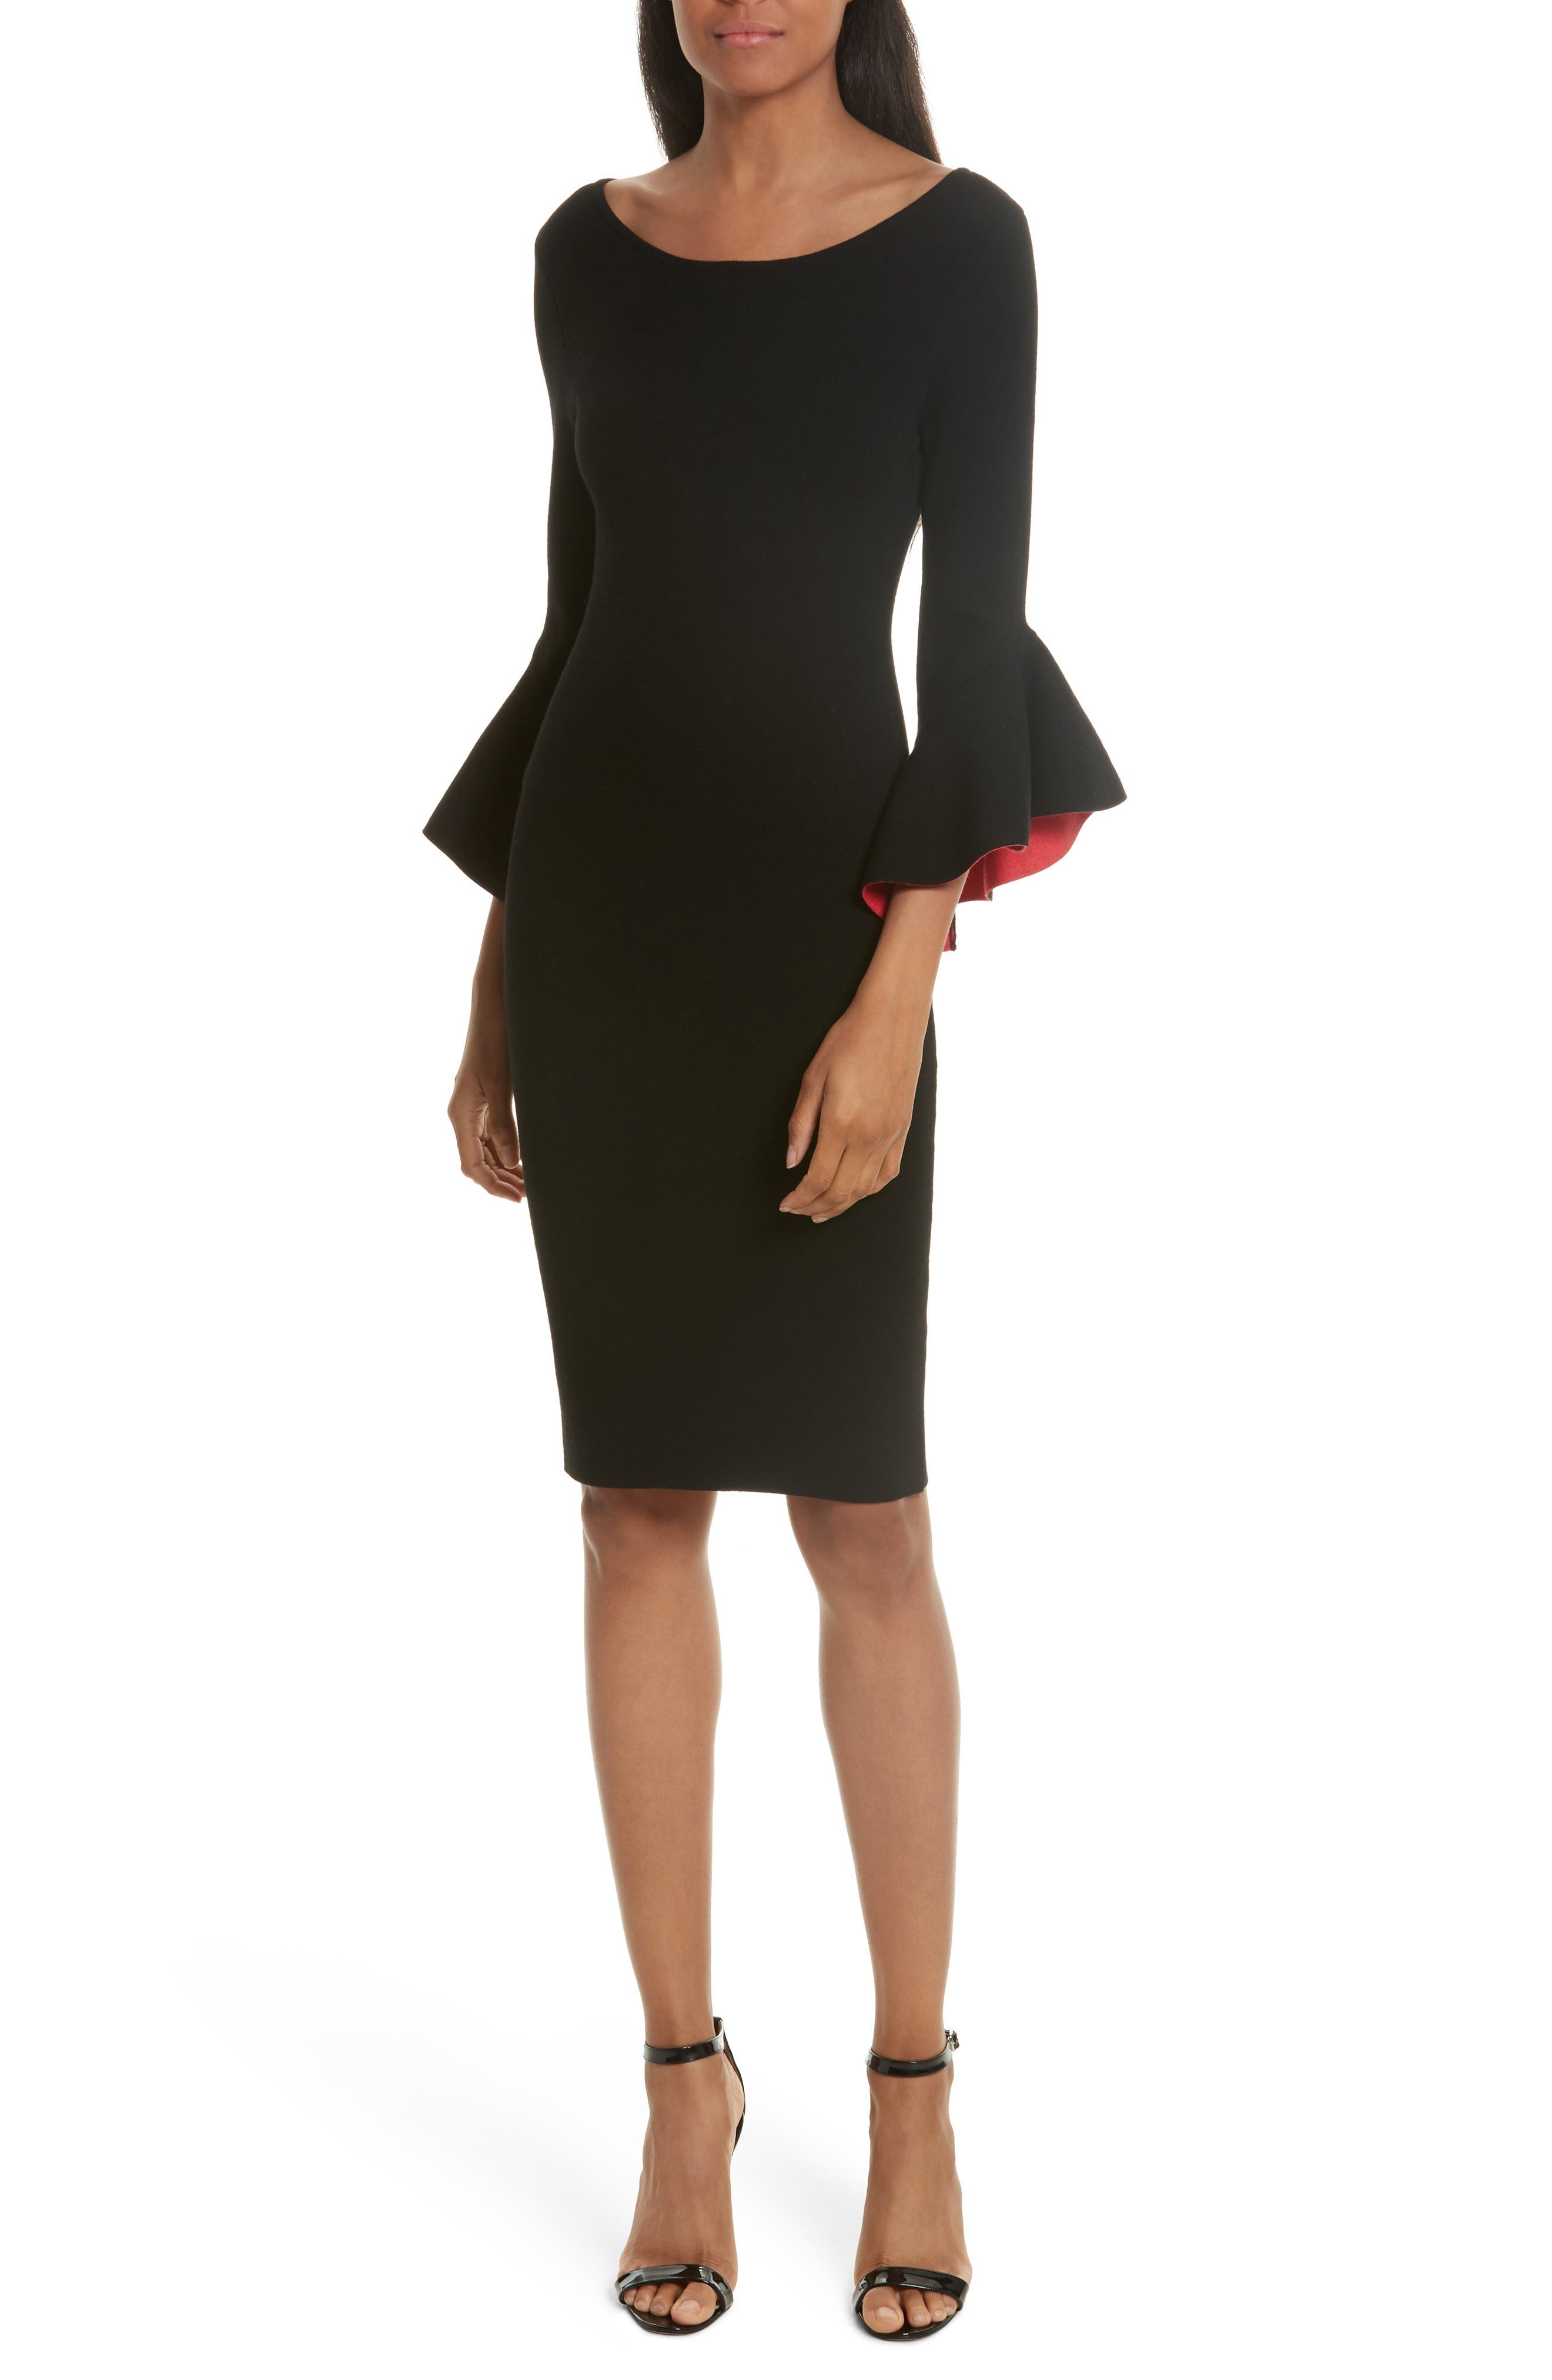 Contrast Lined Bell Sleeve Sheath Dress,                             Main thumbnail 1, color,                             Black/ Cherry